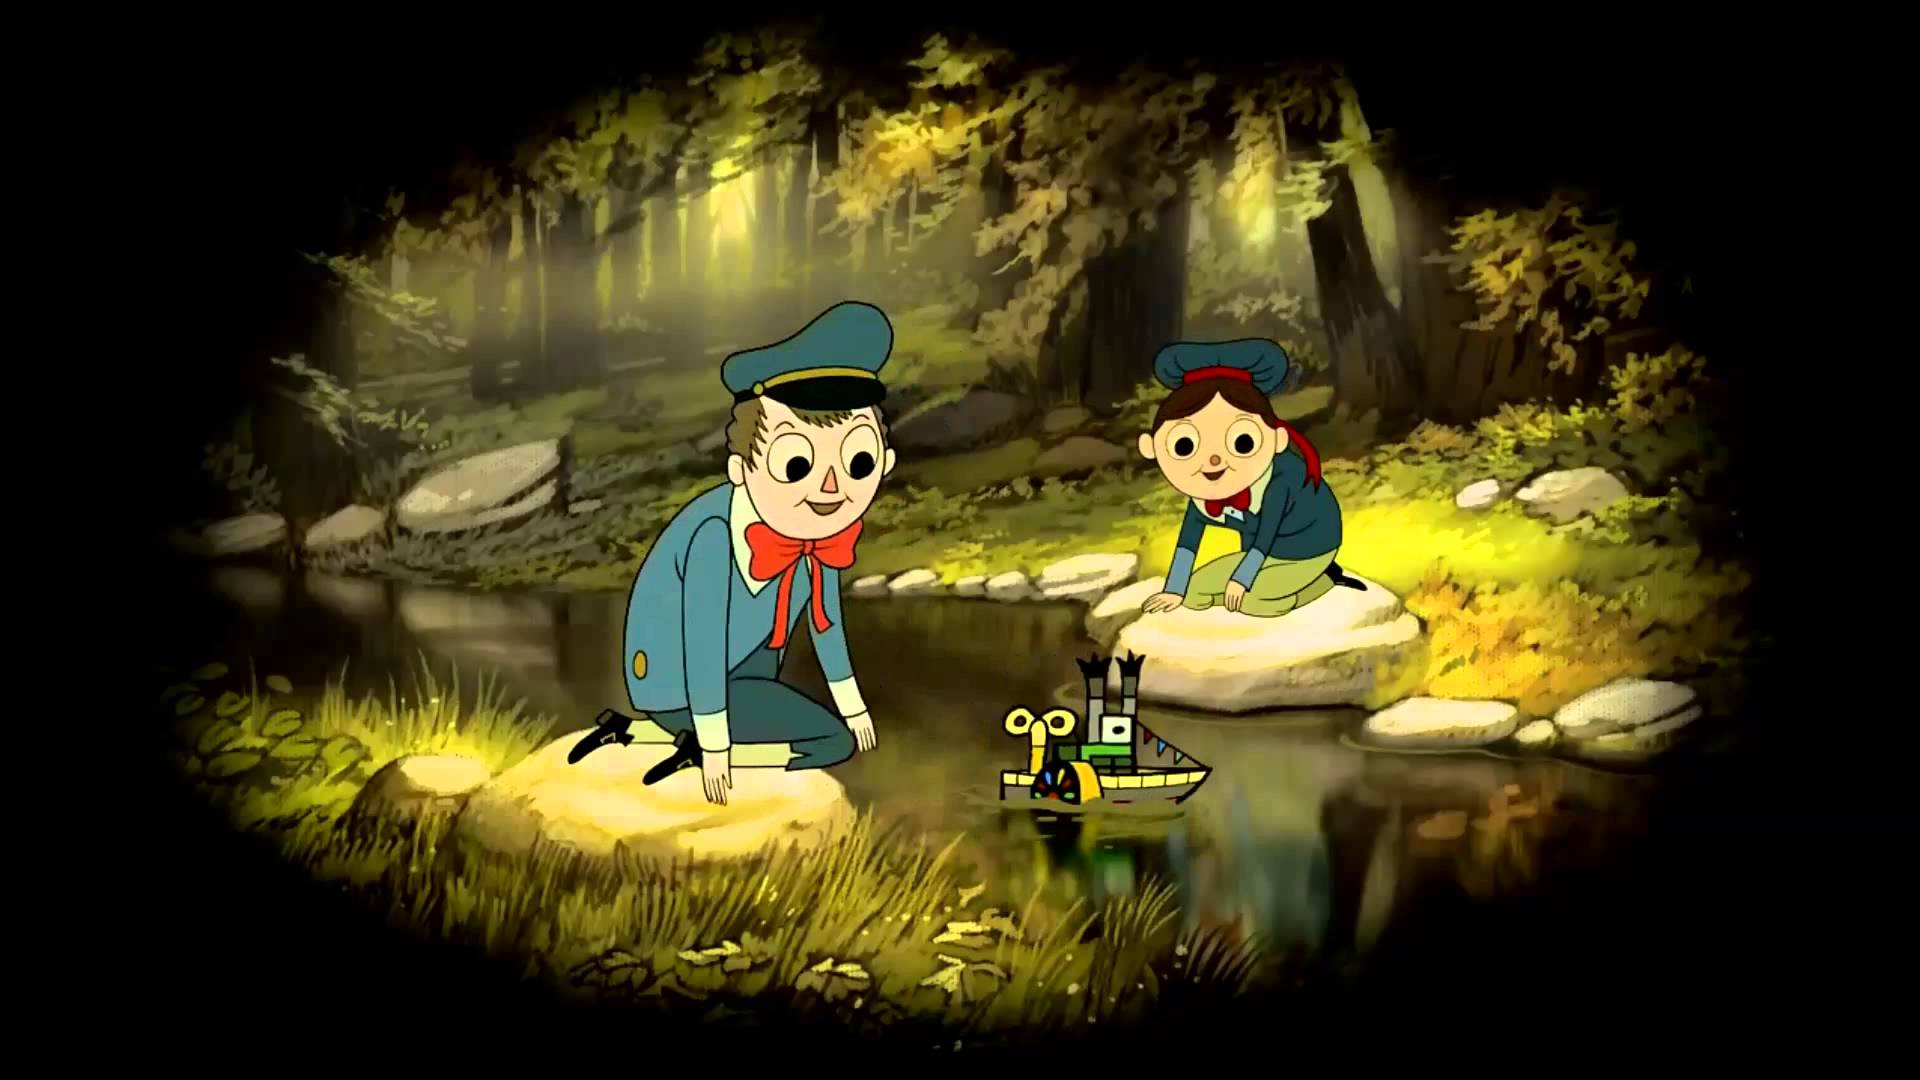 Free Download Over The Garden Wall Hd Wallpapers For Desktop